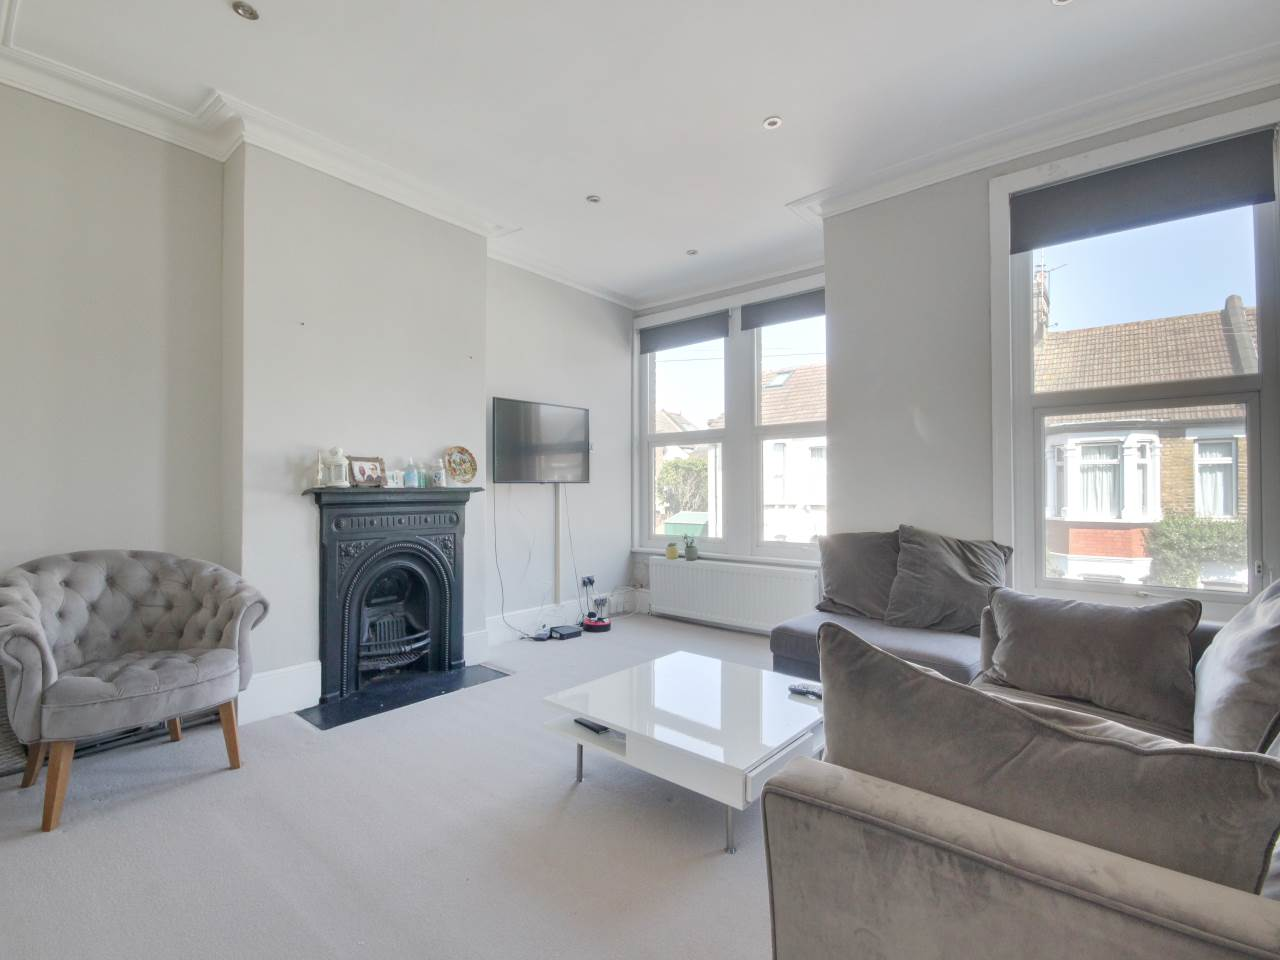 1 bed flat for sale in Chingford, E4